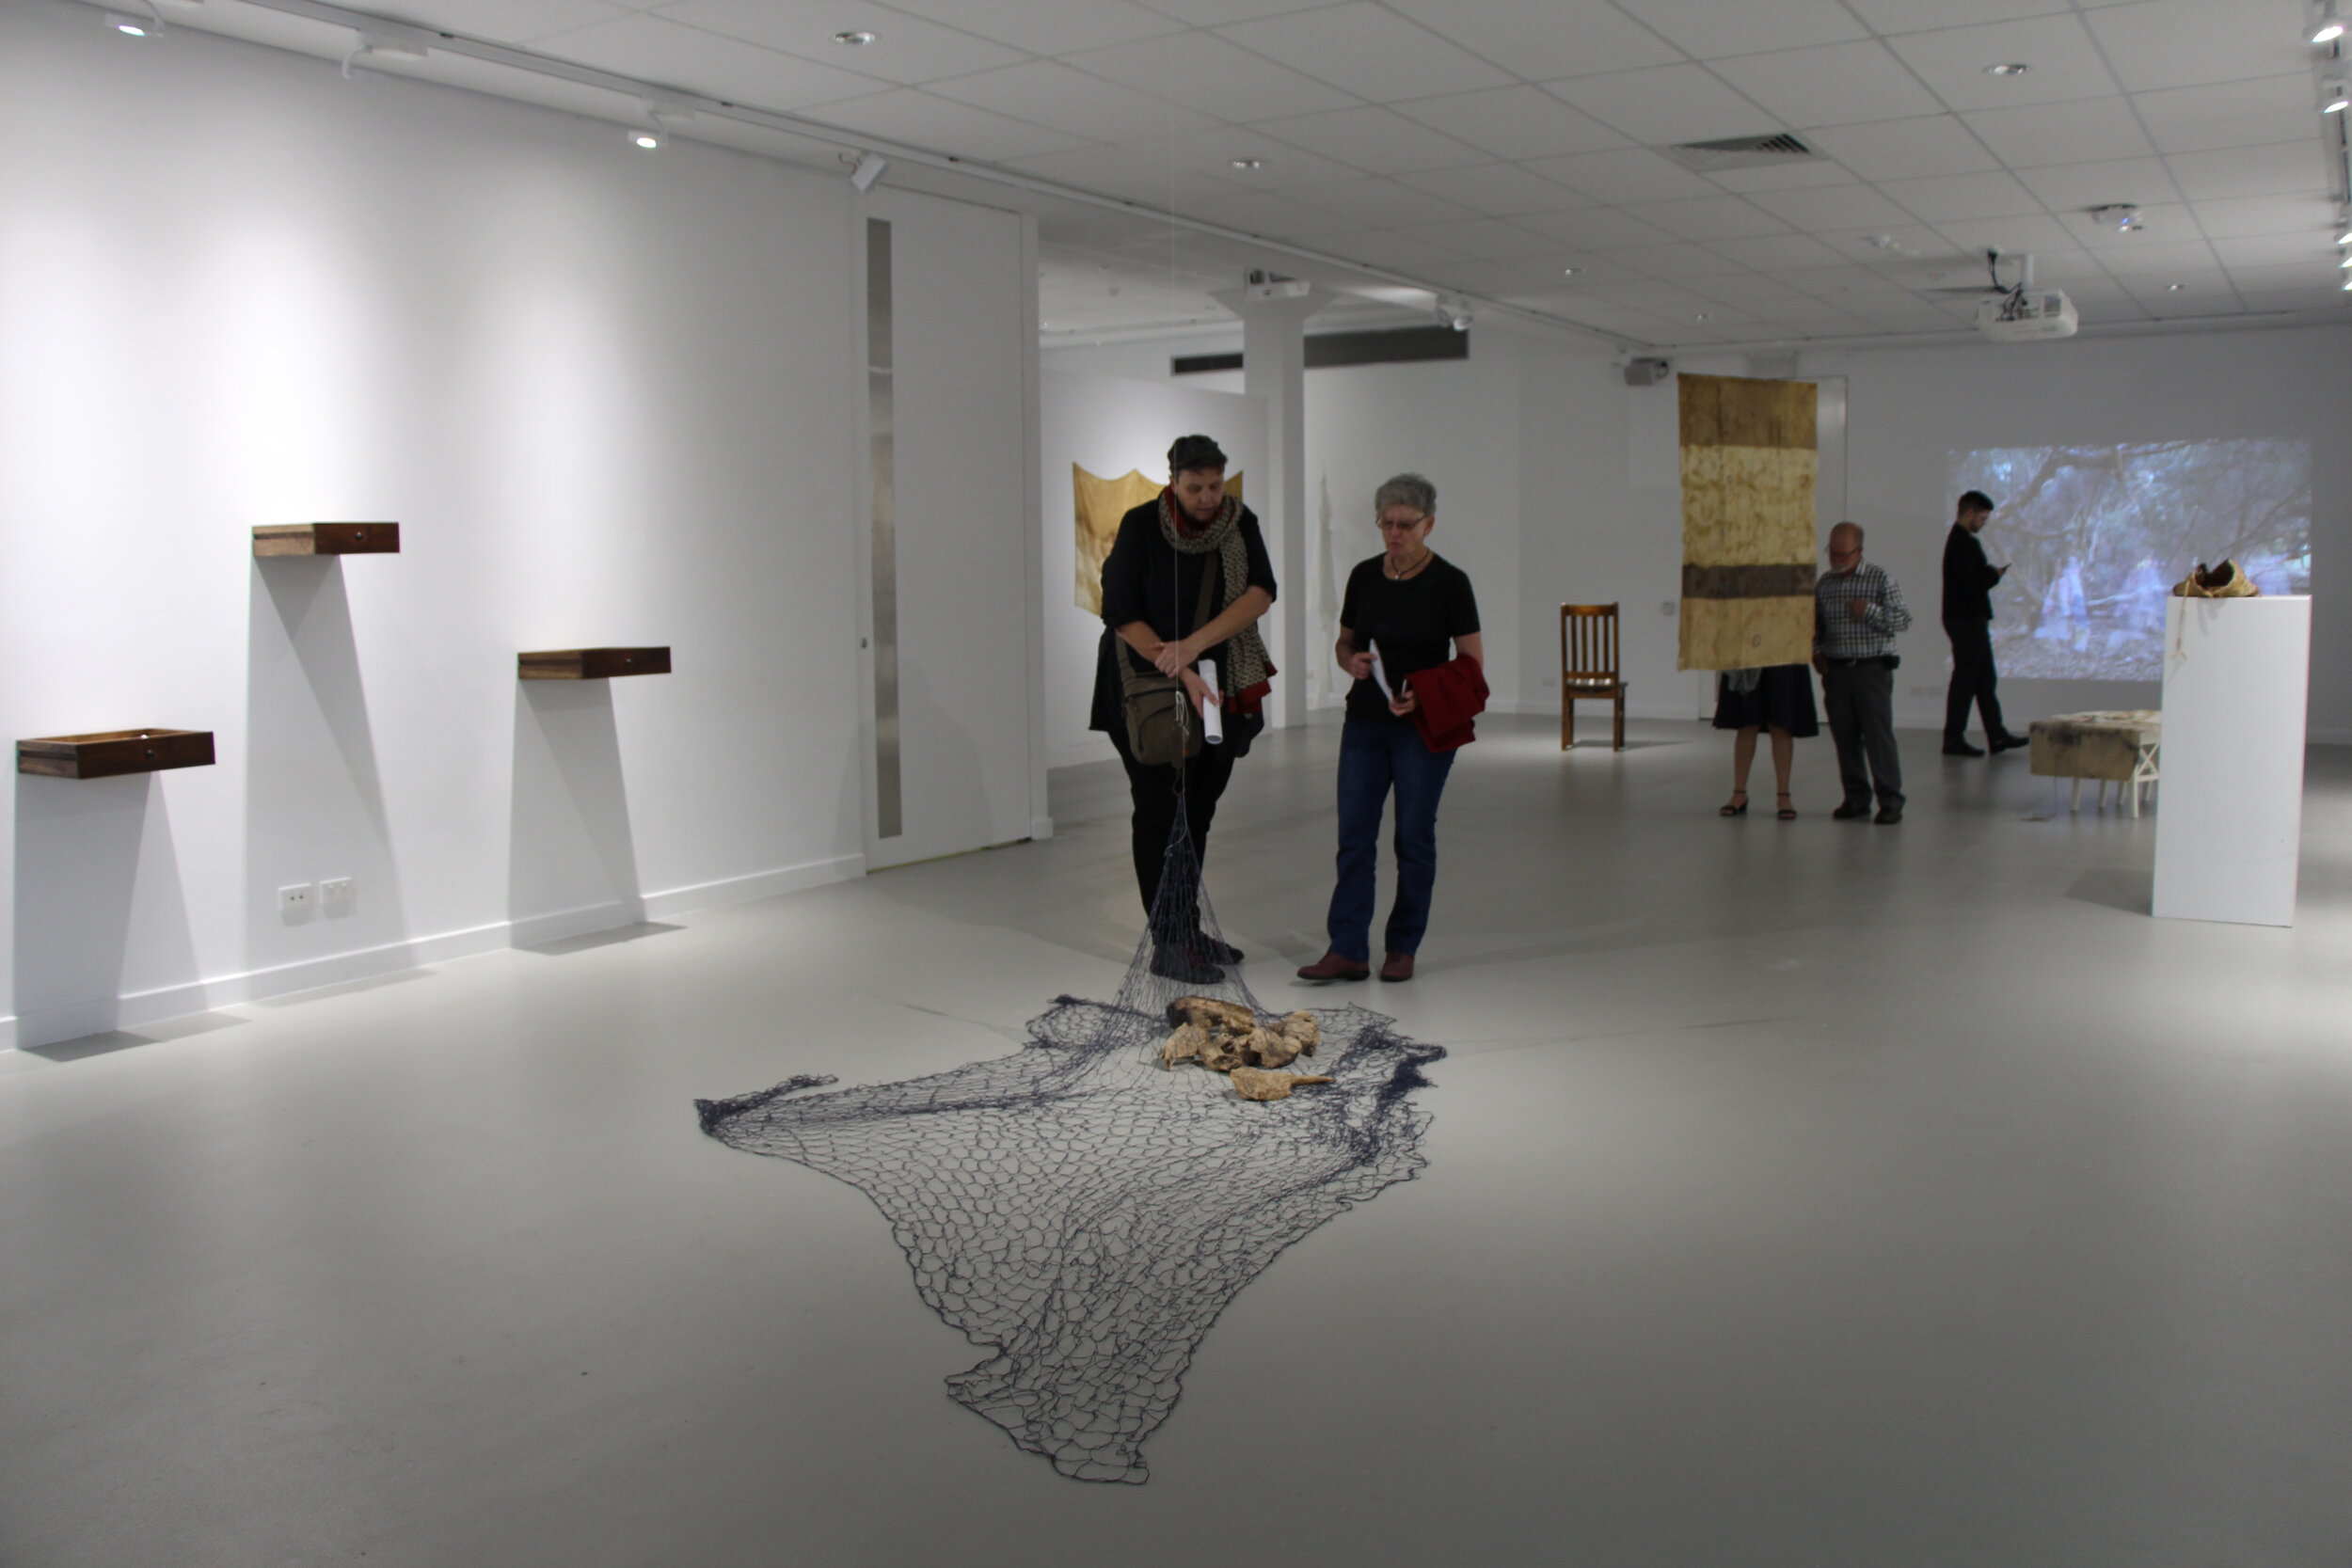 Fragmented Memories opening at Spectrum Project Space, ECU